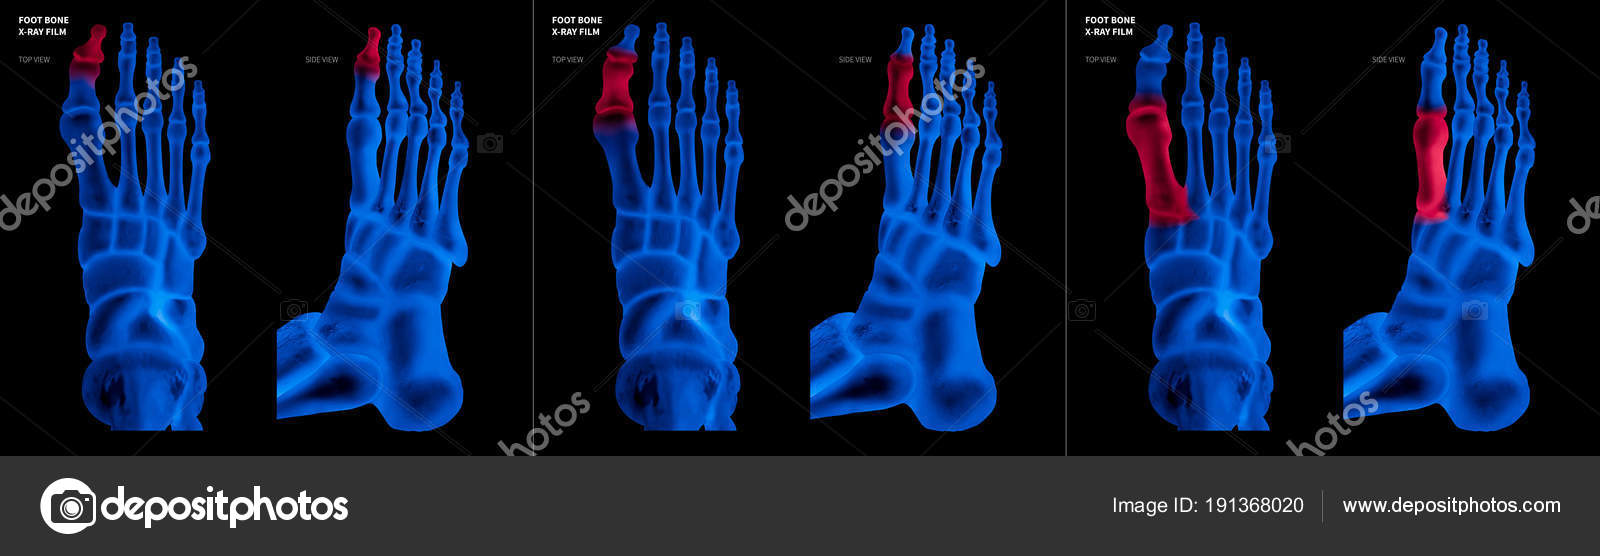 X-ray blue film collection of Big toe foot bone with red highlights ...